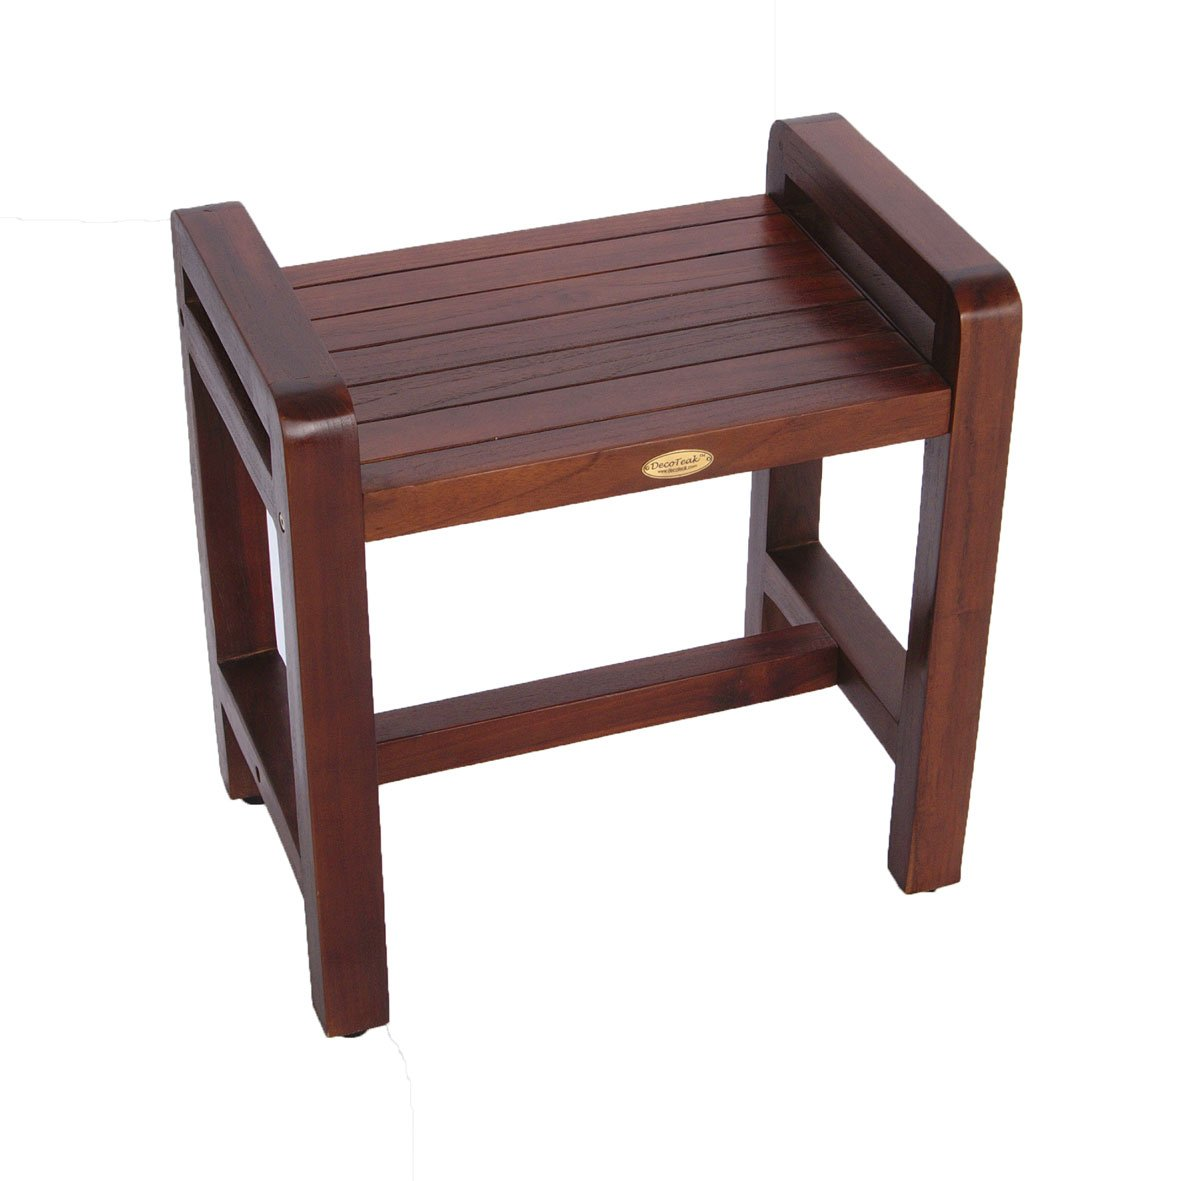 Teak Shower Bench with Lift Aide Arms